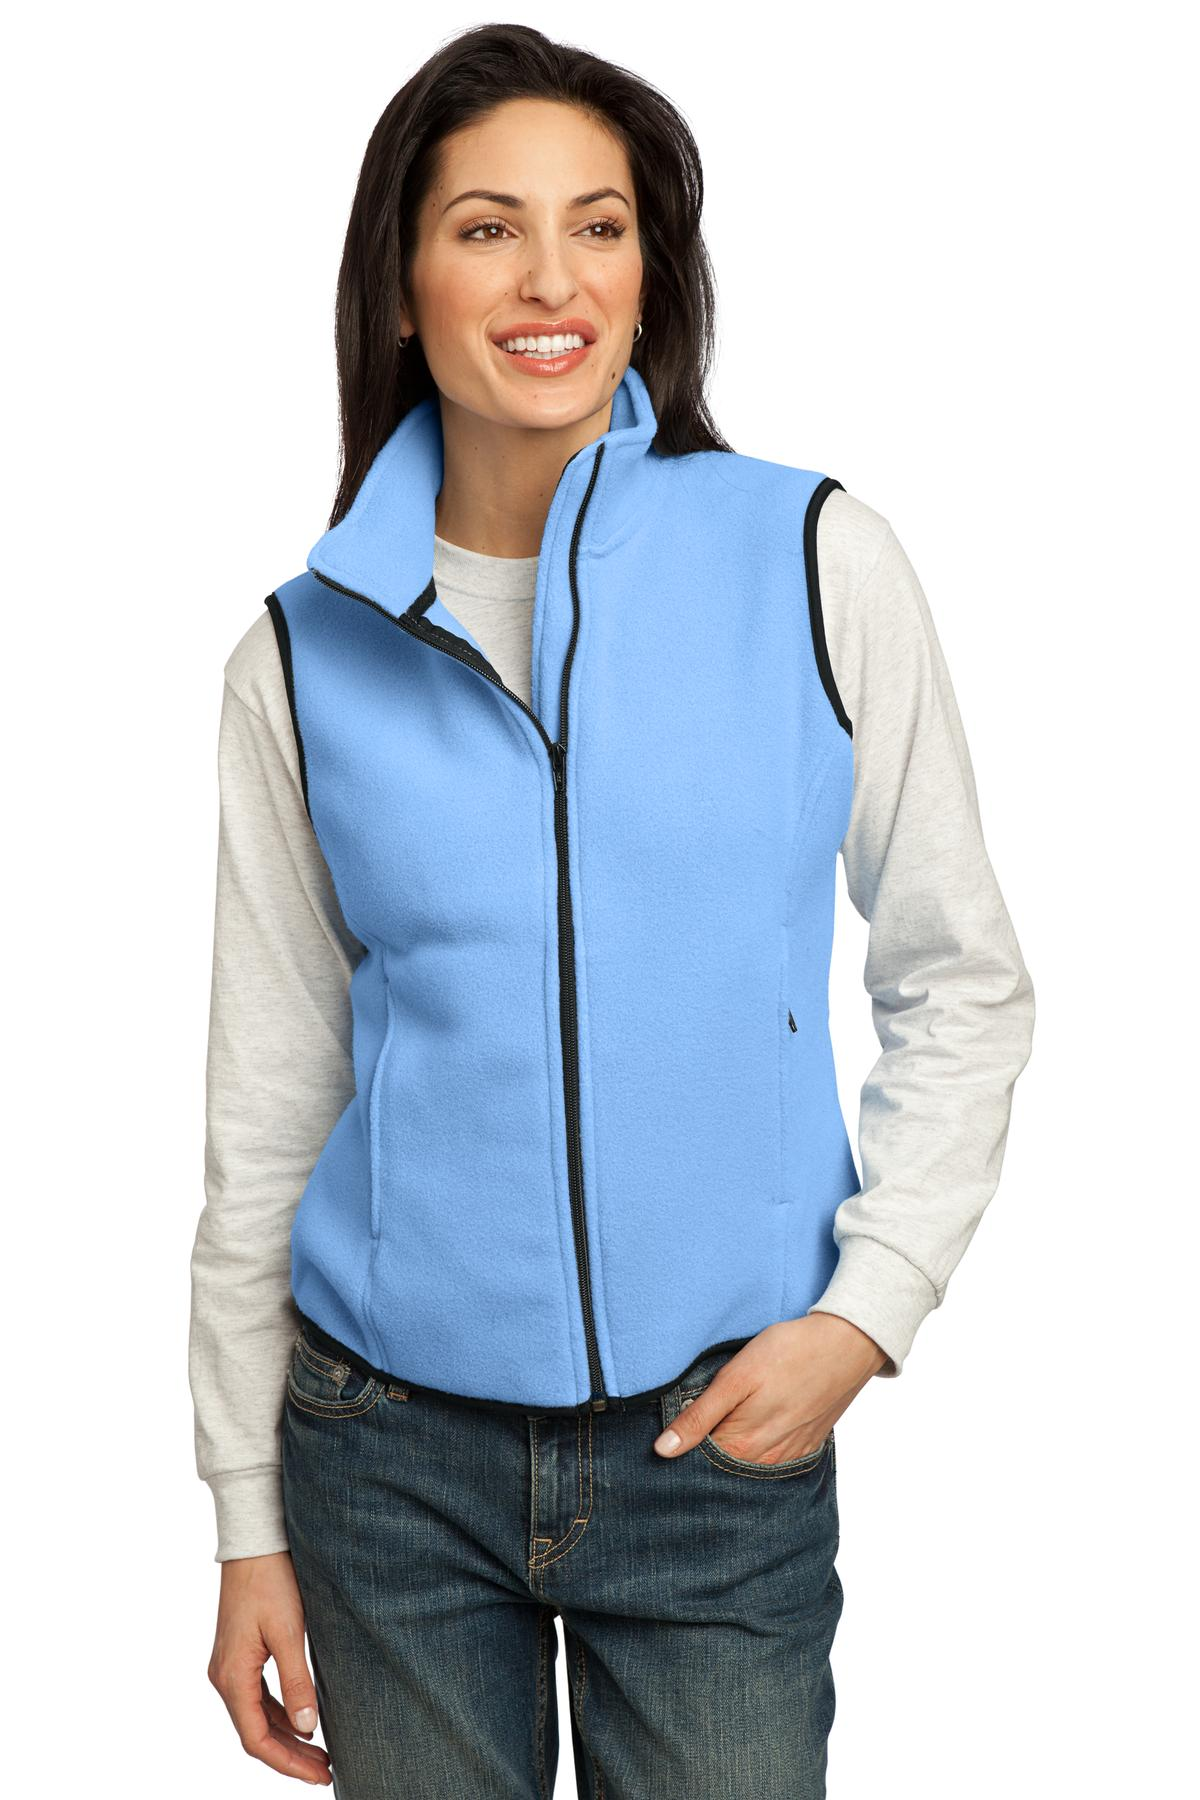 Outerwear-Vests-24